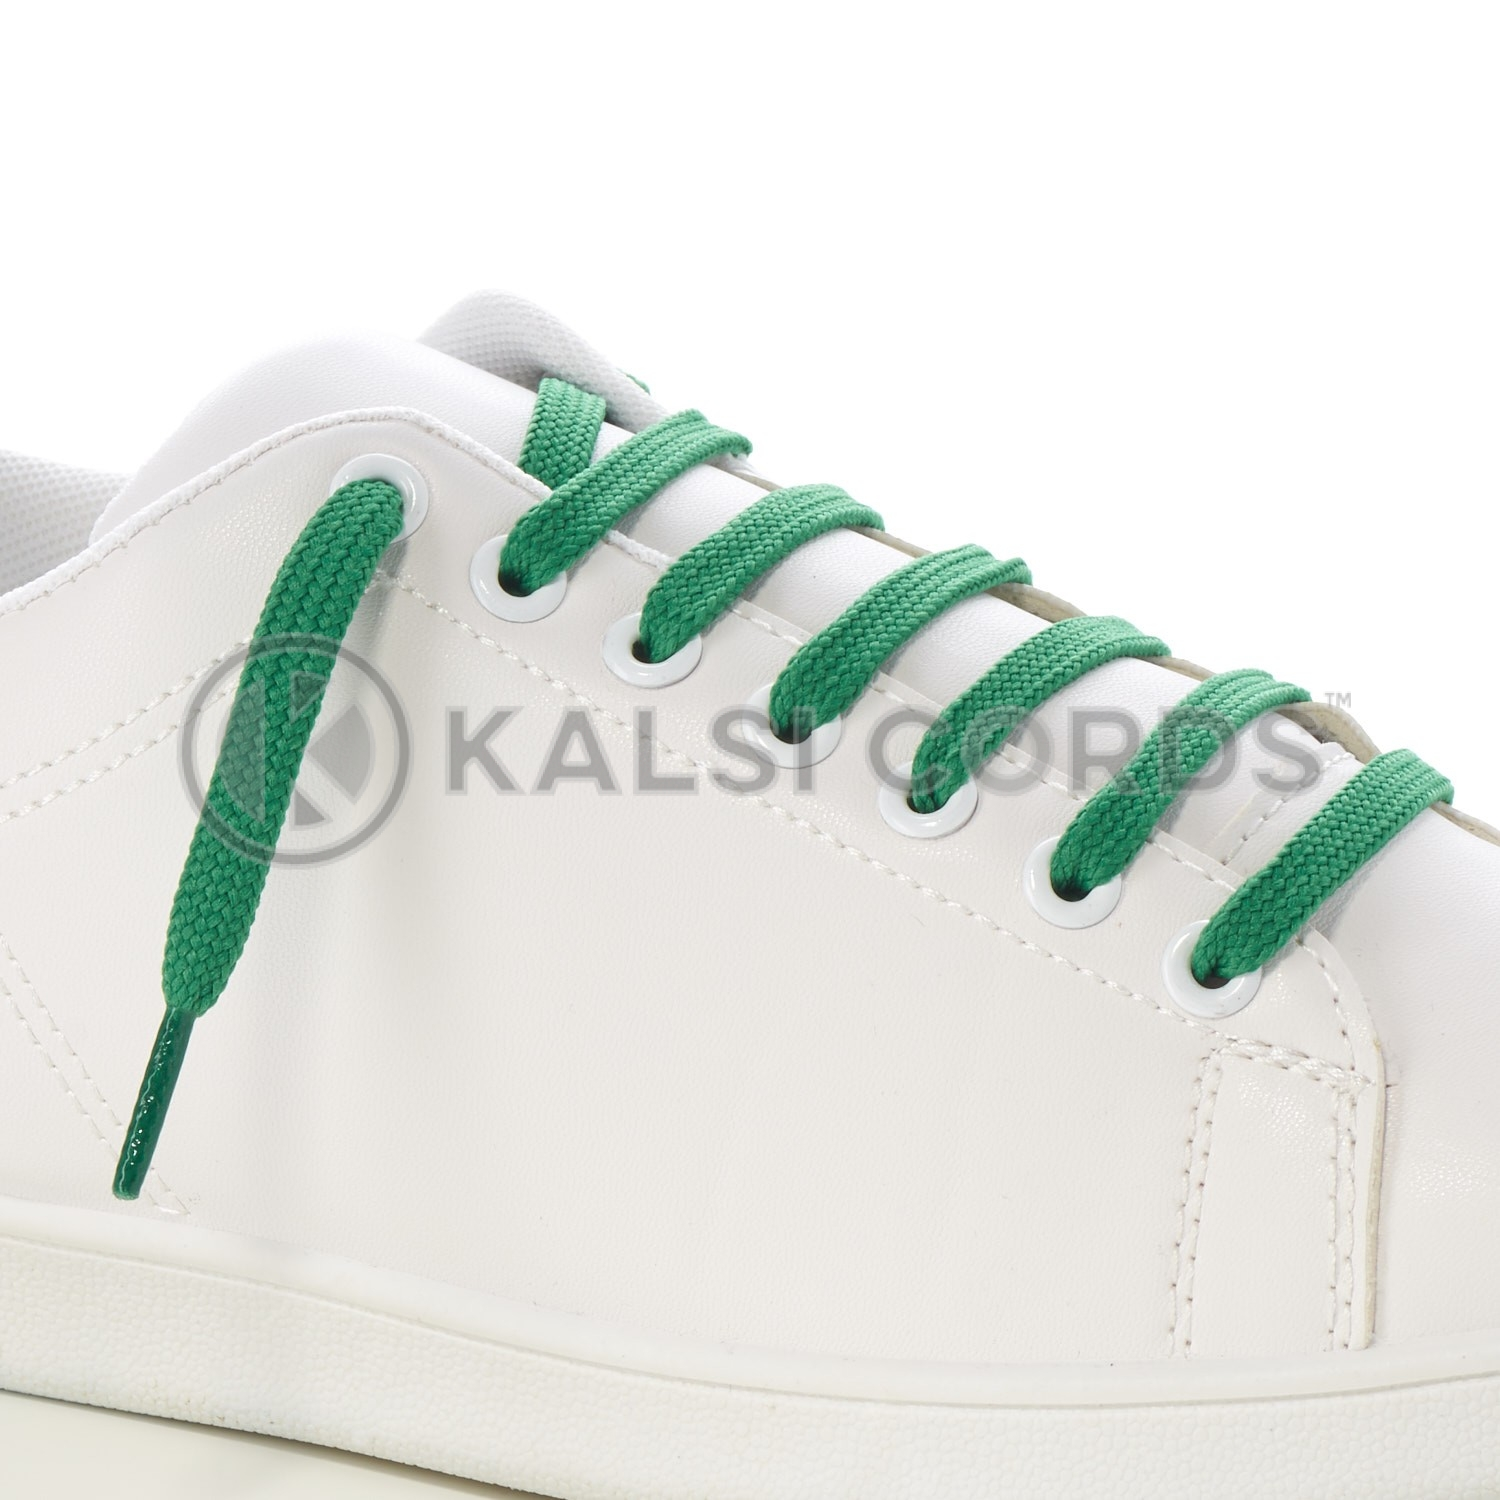 9mm Flat Shoe Laces Tubular Emerald Green PG517 Sports Trainers Boots Footwear Drawstring Drawcord